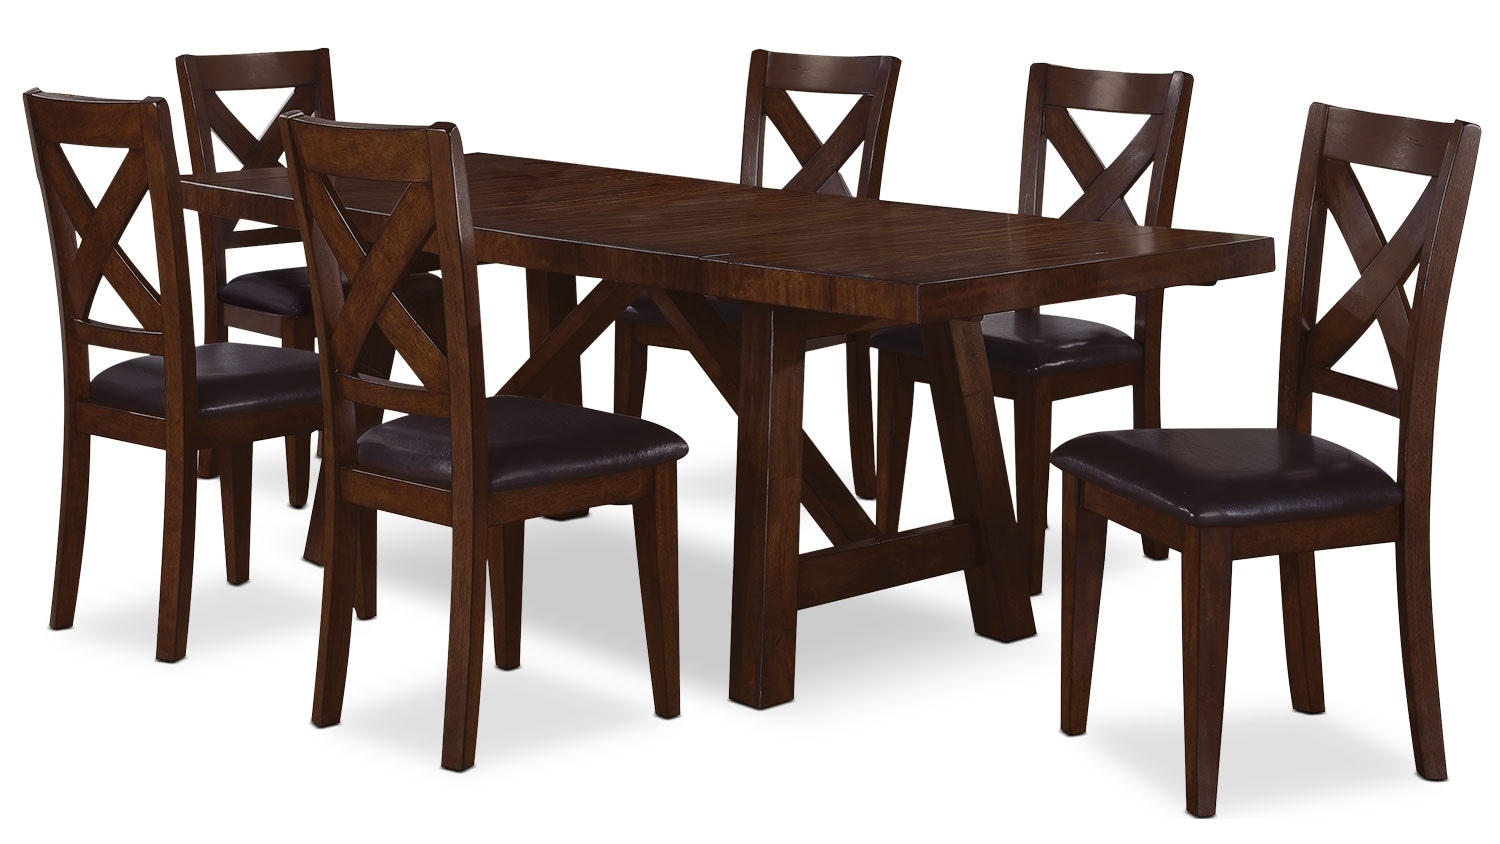 Adara 7 Piece Dining Package with Cross-Back Chairs